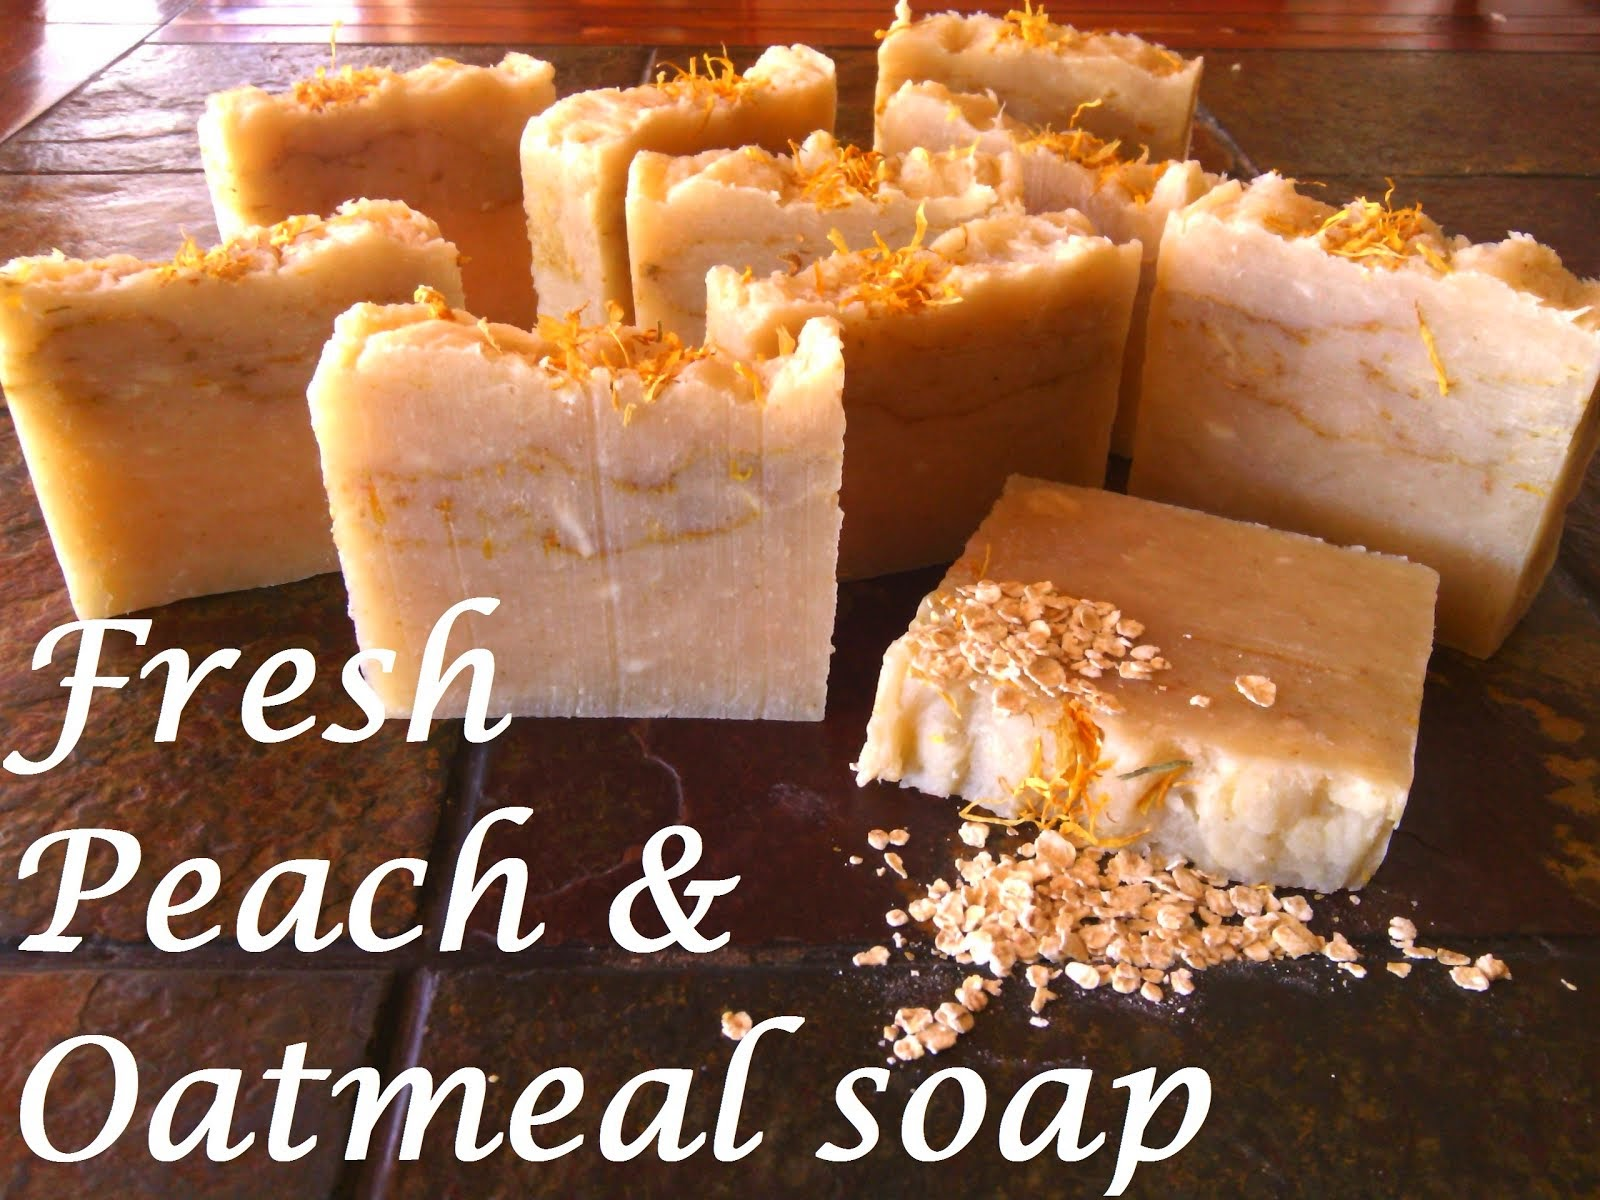 Homemade Shea Butter enriched soap